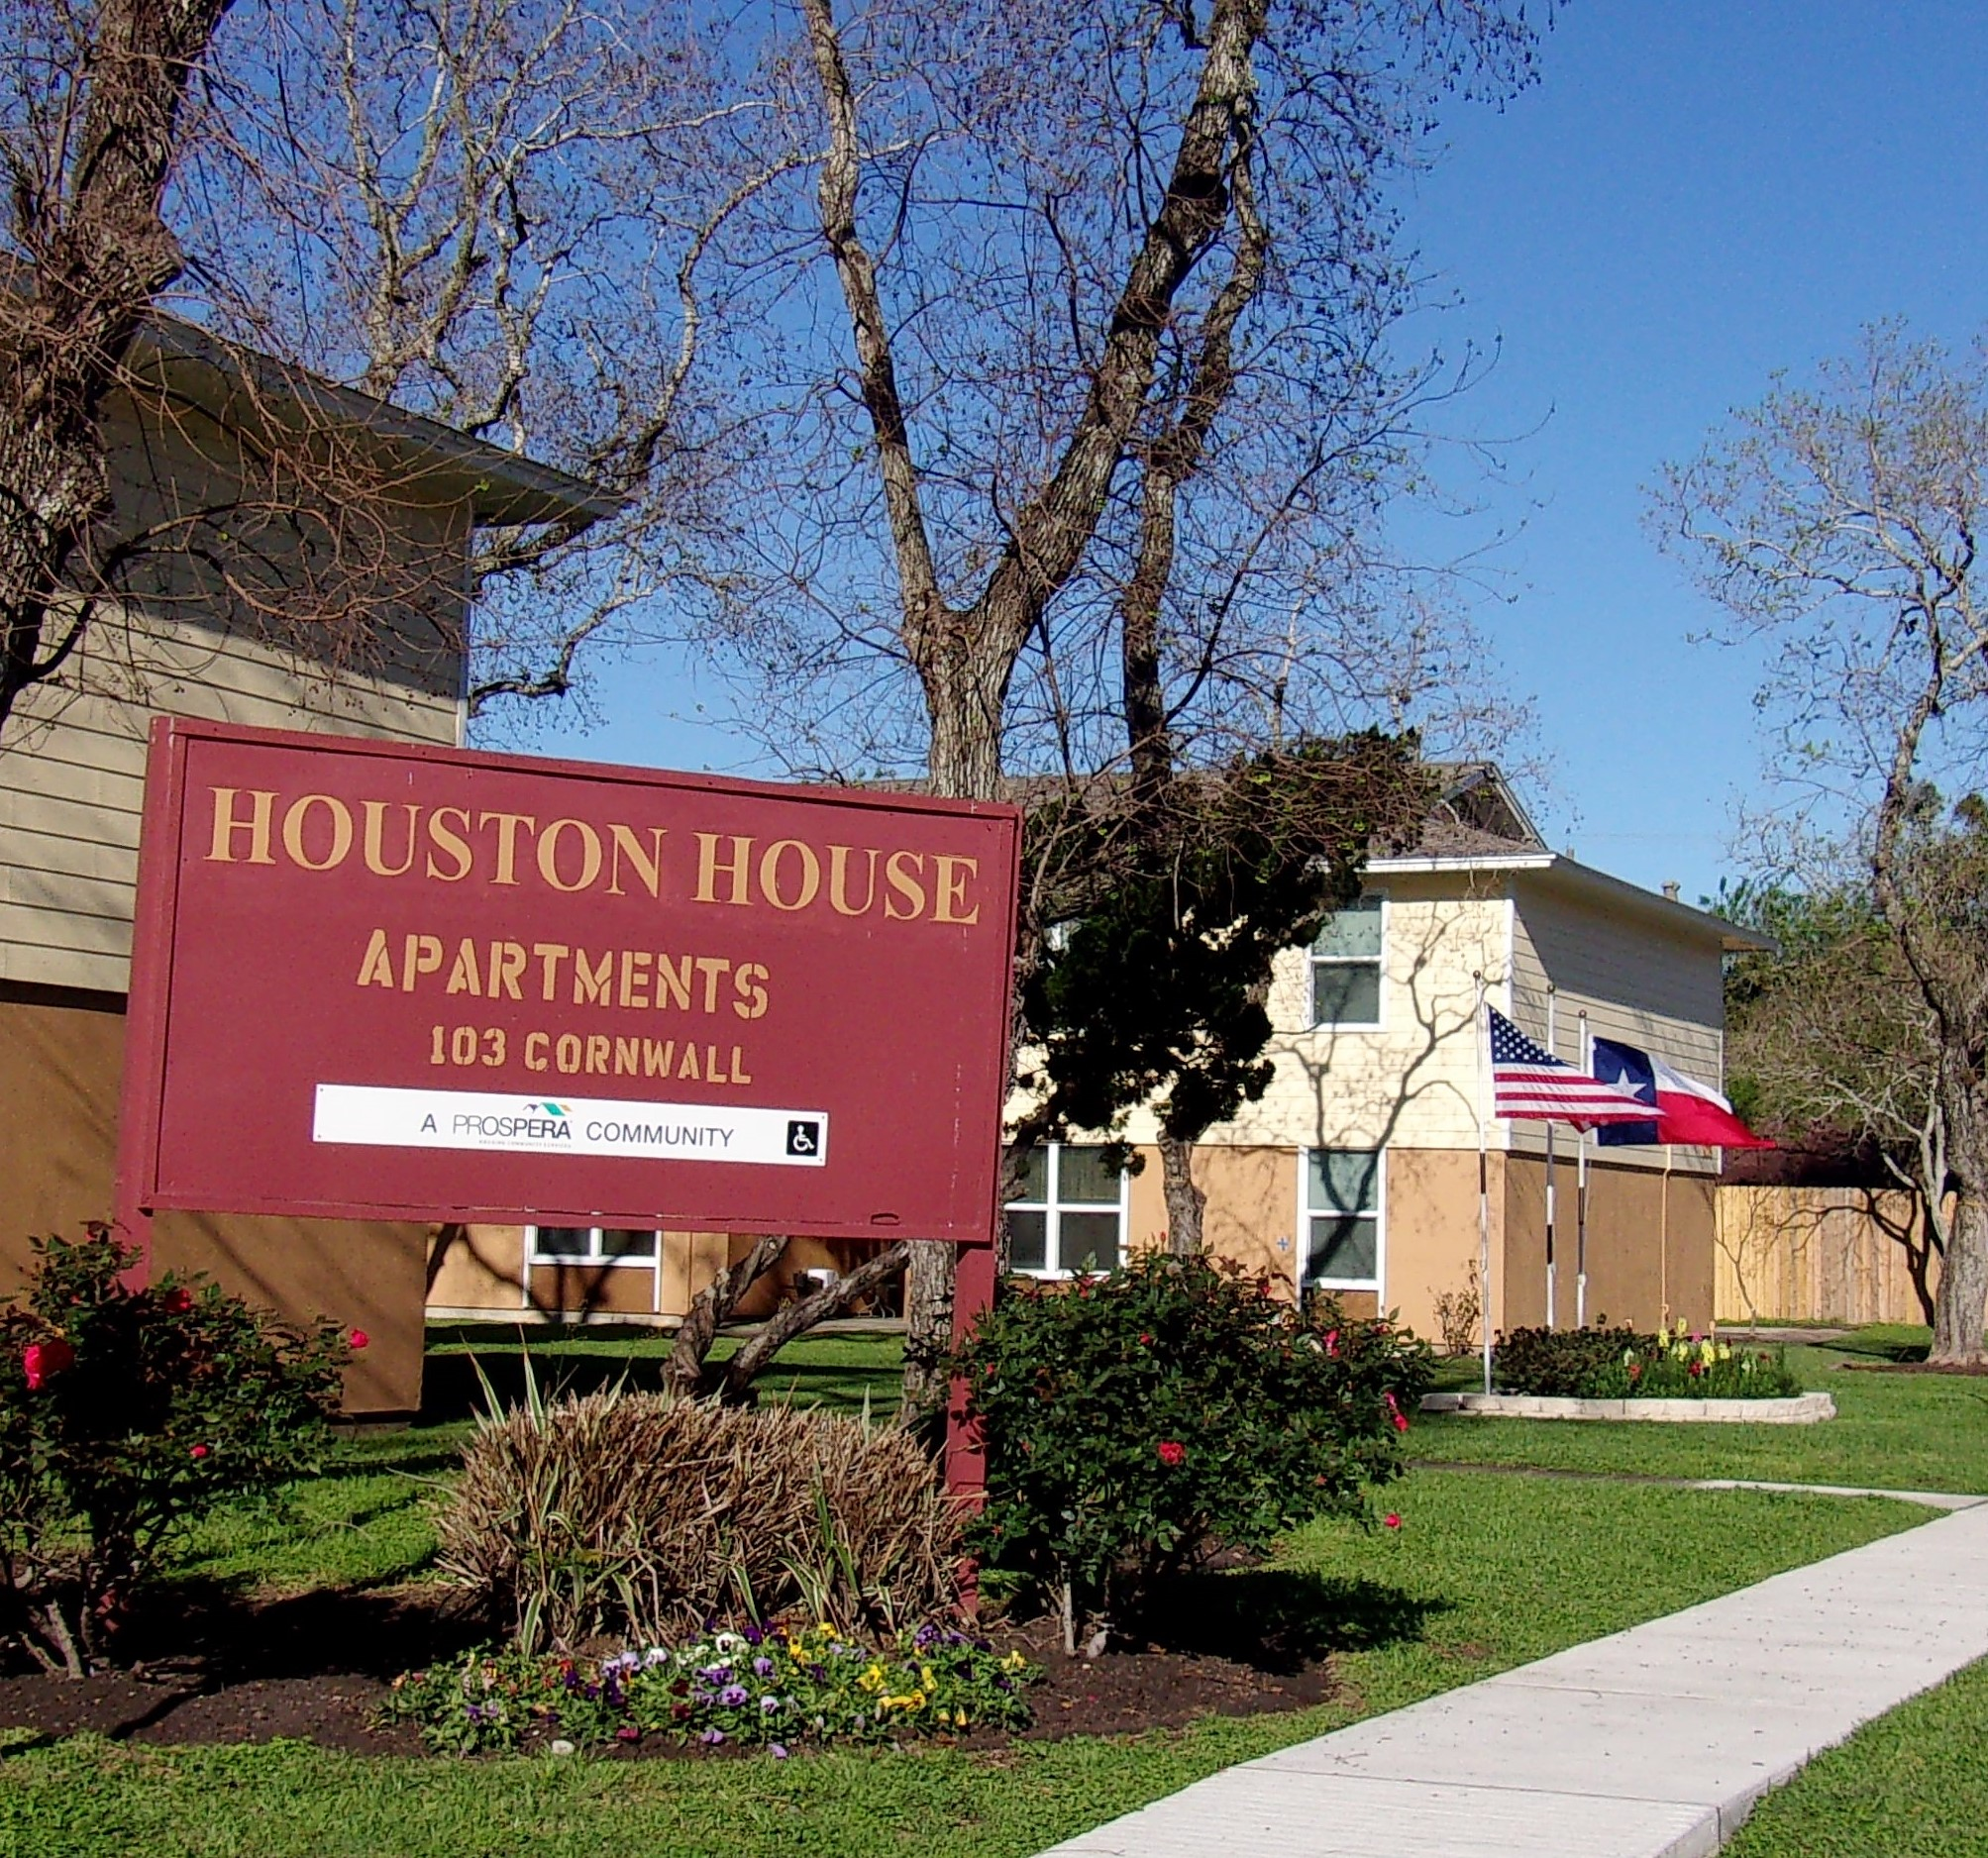 Image of Houston House Apts.